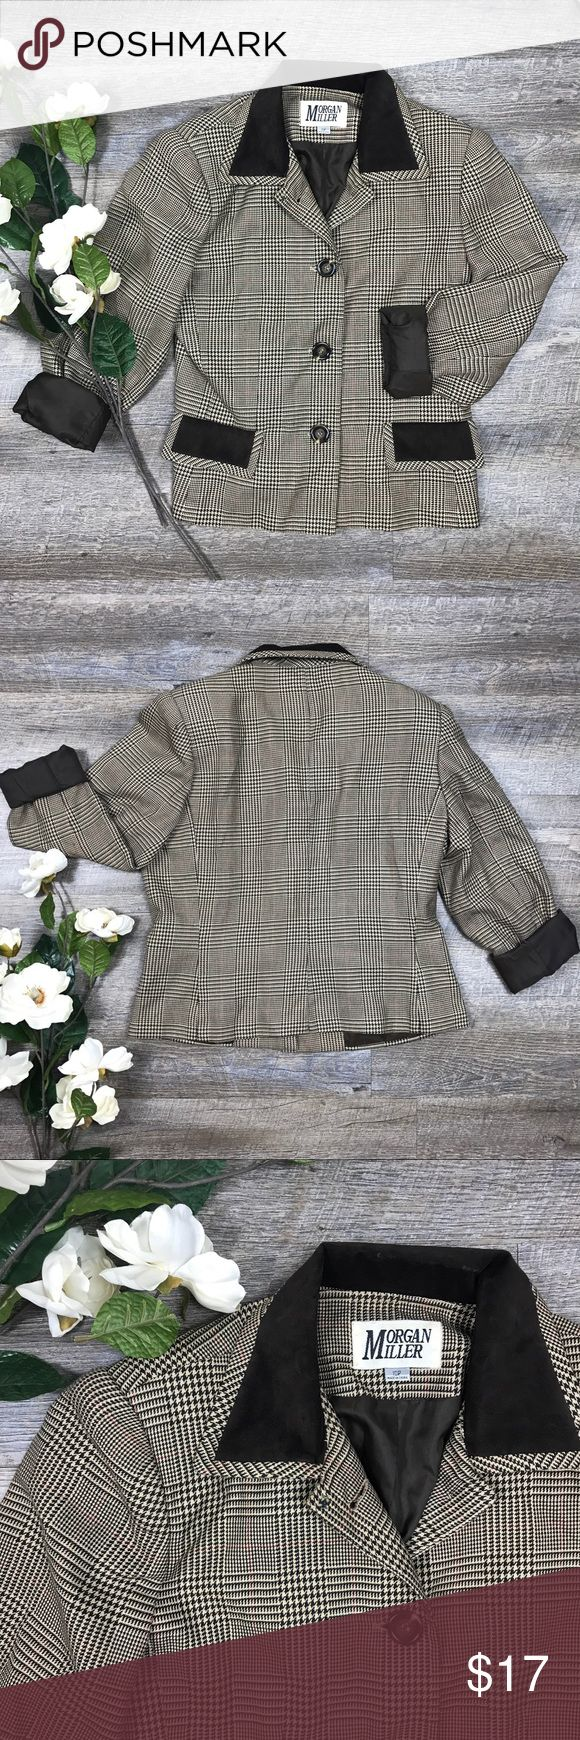 Morgan Miller Blazer Adorable Morgan Miller blazer! In good condition. 65% polyester, 35% Rayon. Size 10. See images for measurements. F-19 Morgan Miller Jackets & Coats Blazers